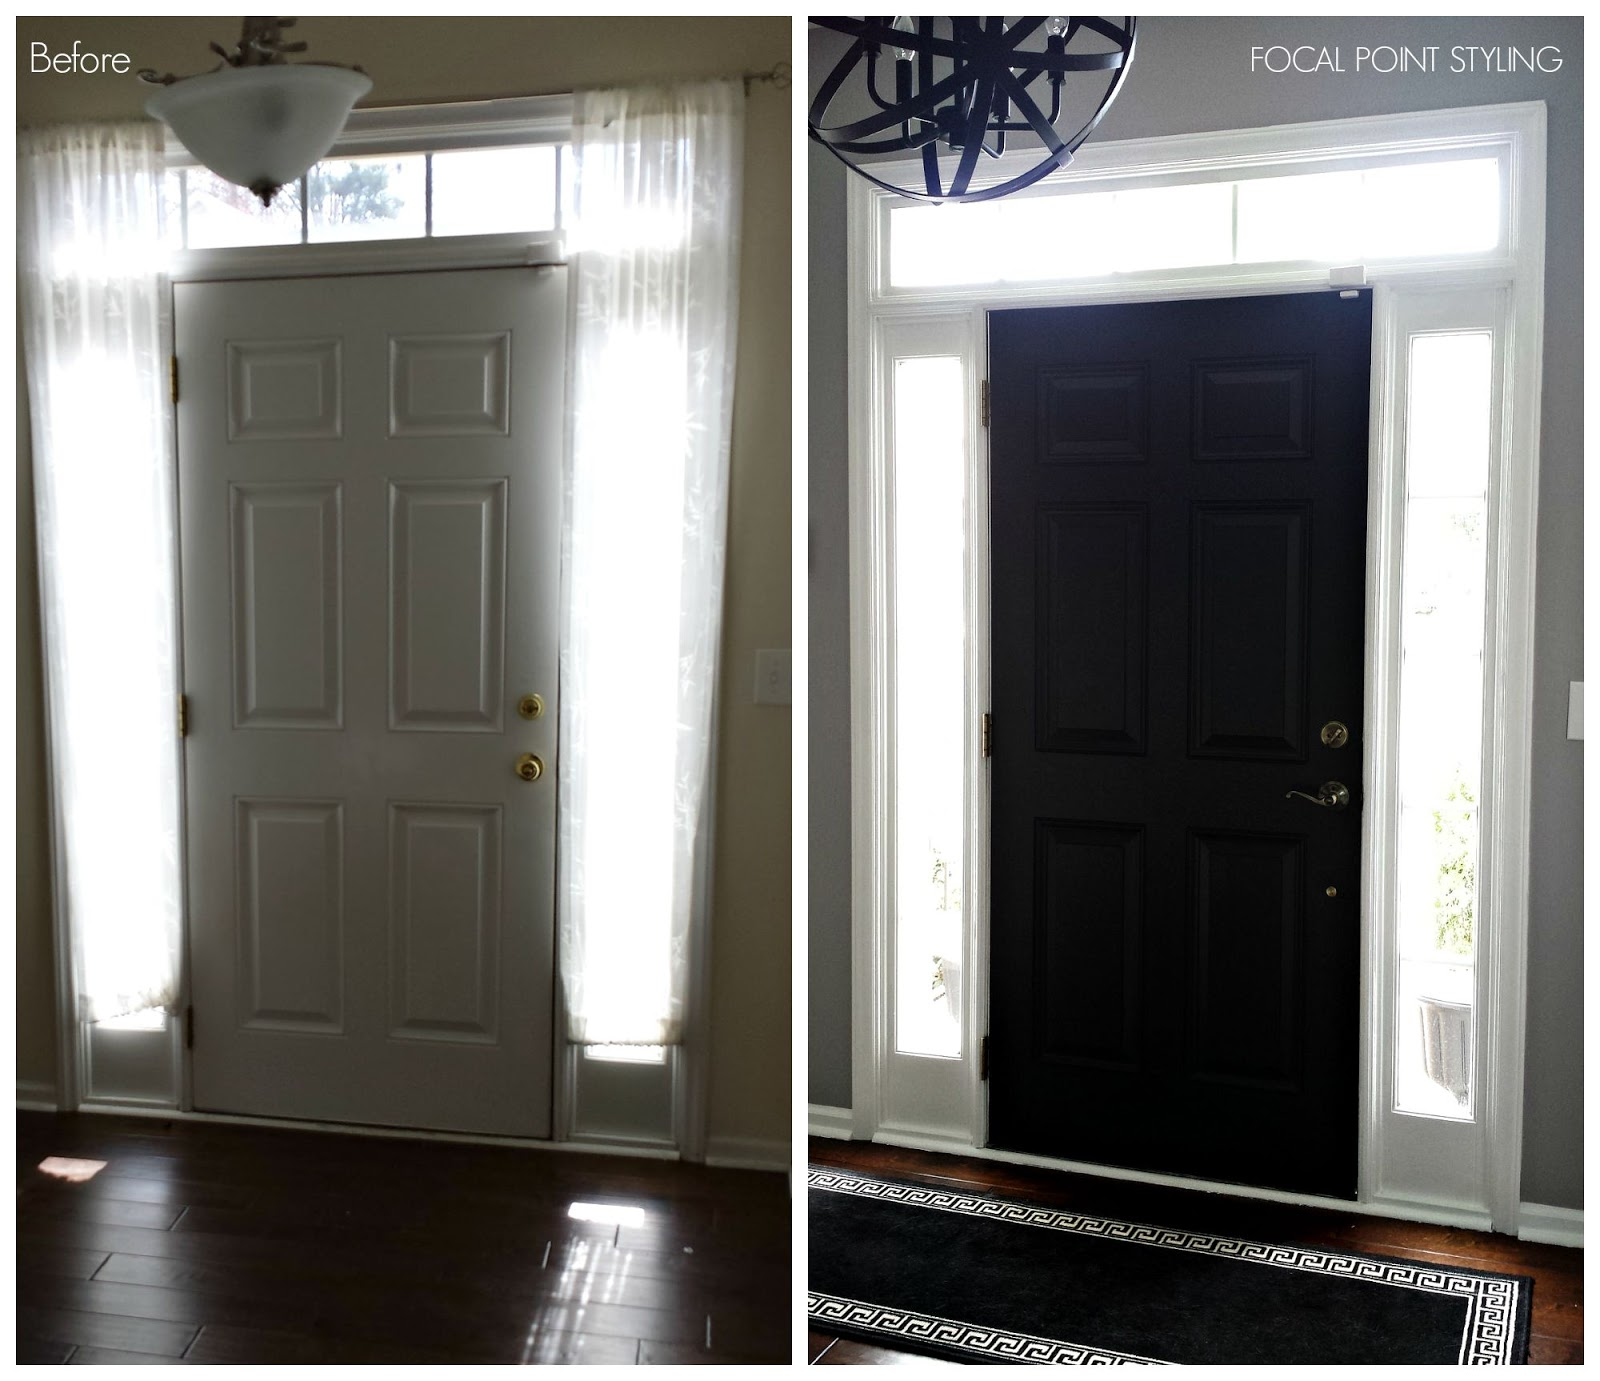 promo code 71167 87c21 FOCAL POINT STYLING: How To Paint Interior Doors Black ...